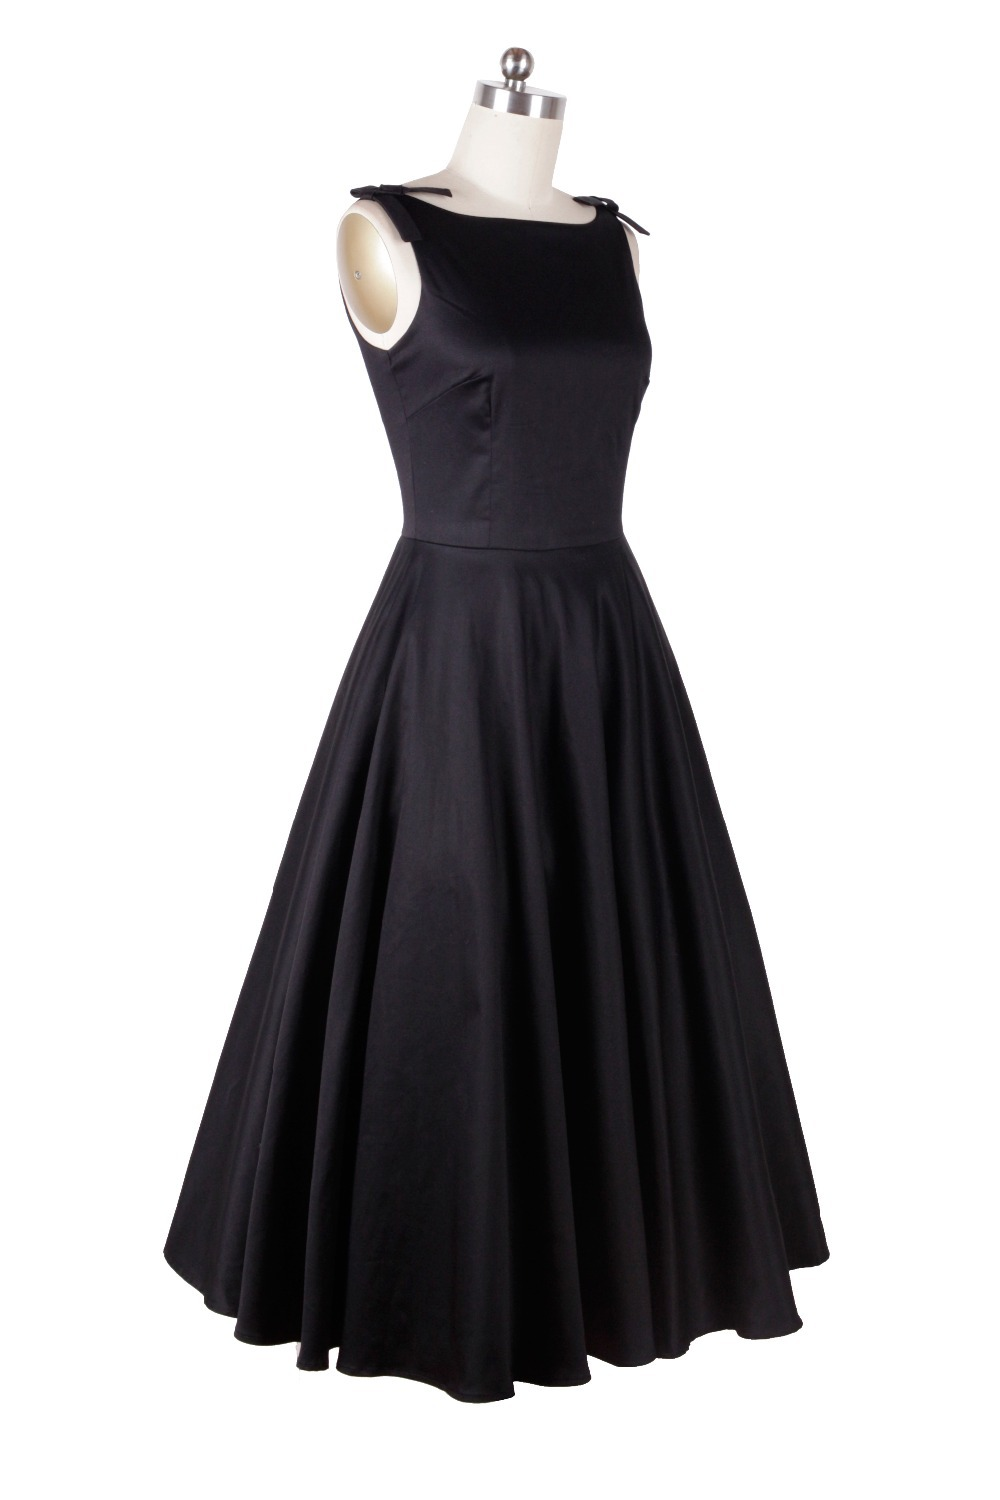 50s 60s Vintage Retro style Solid Swing Party Prom Pinup Rockabilly ...